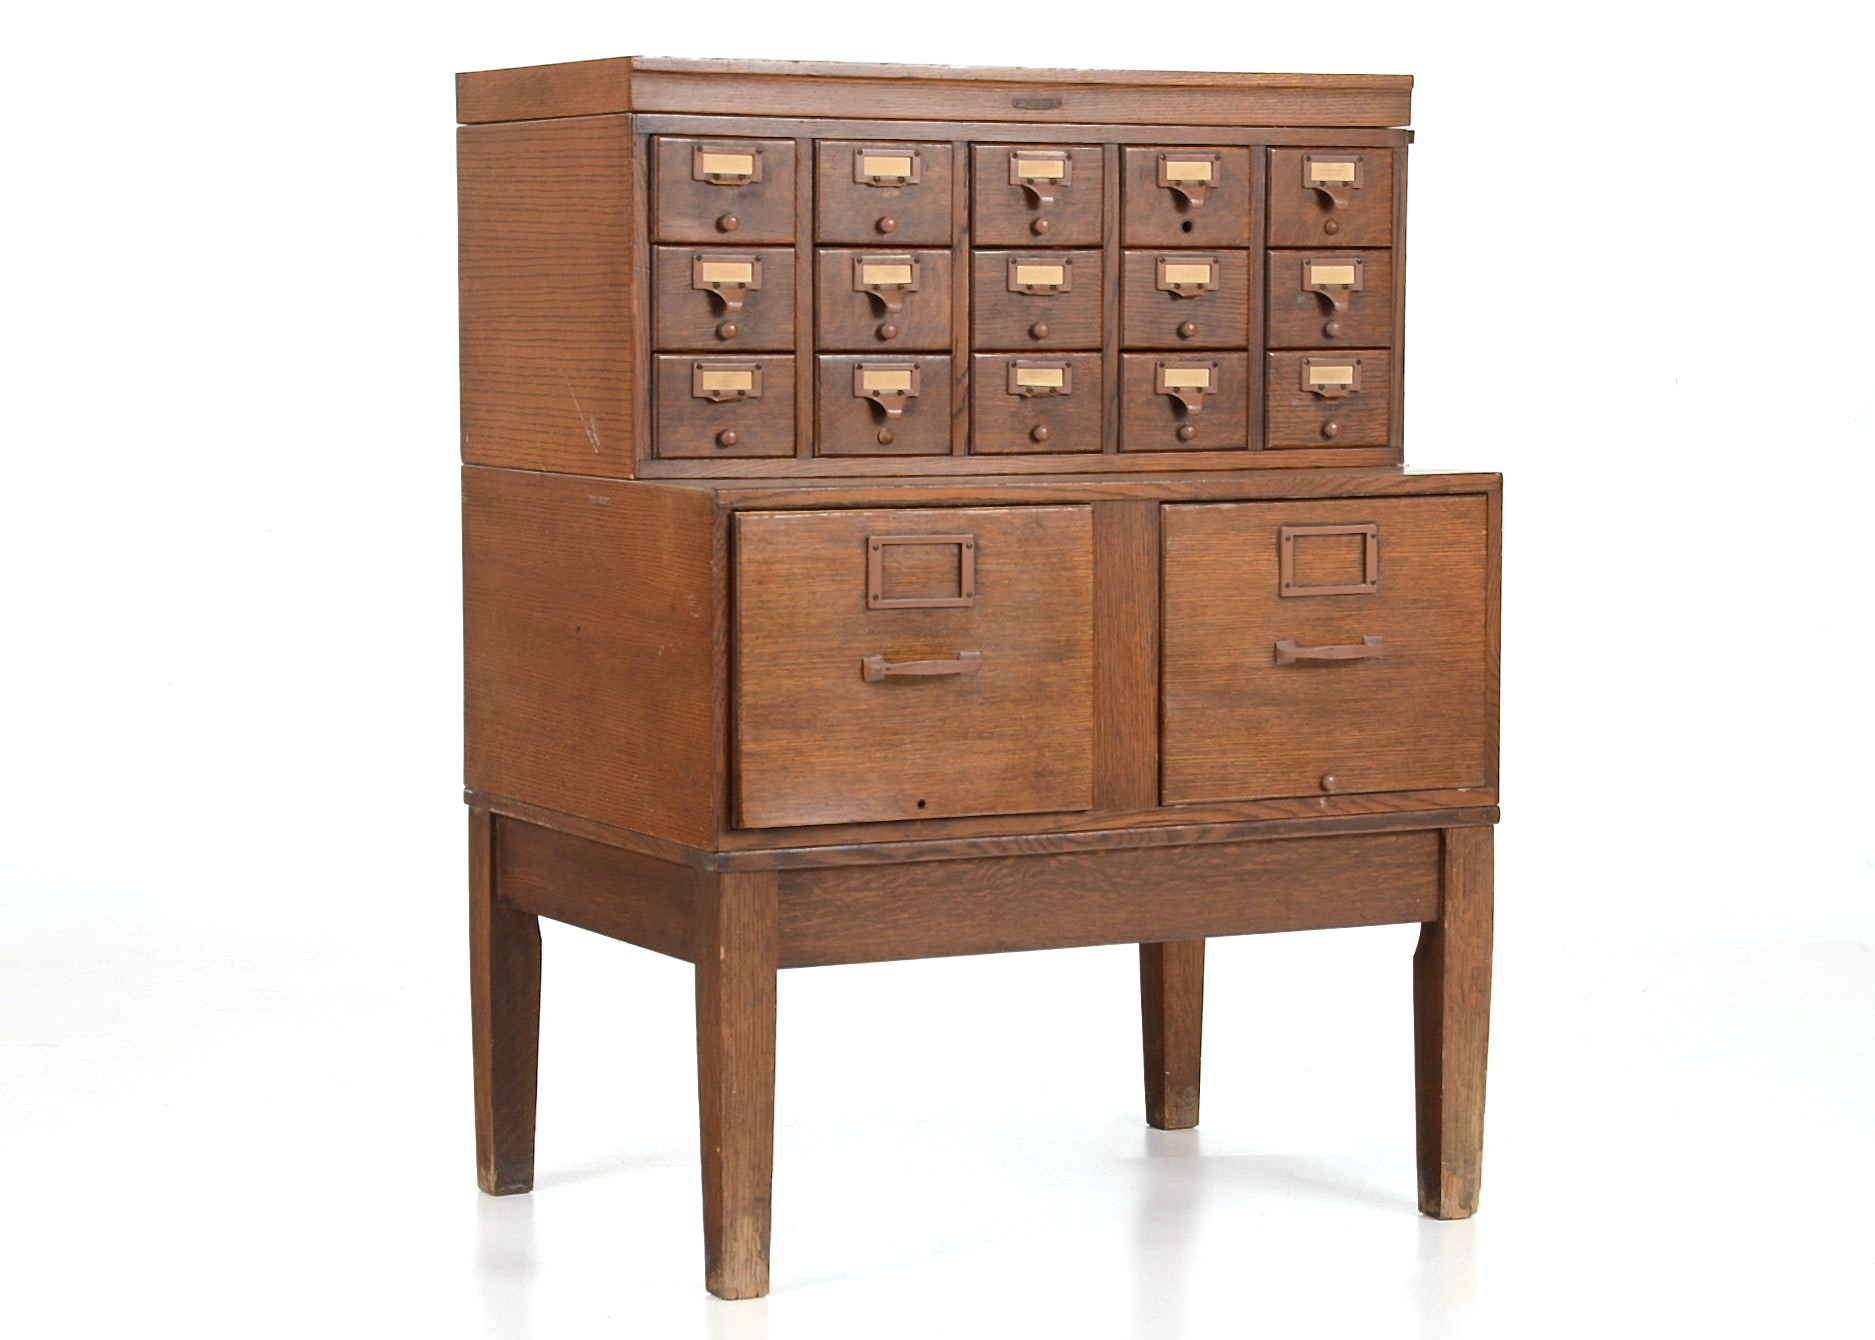 Vintage Library Card Catalog Ebth